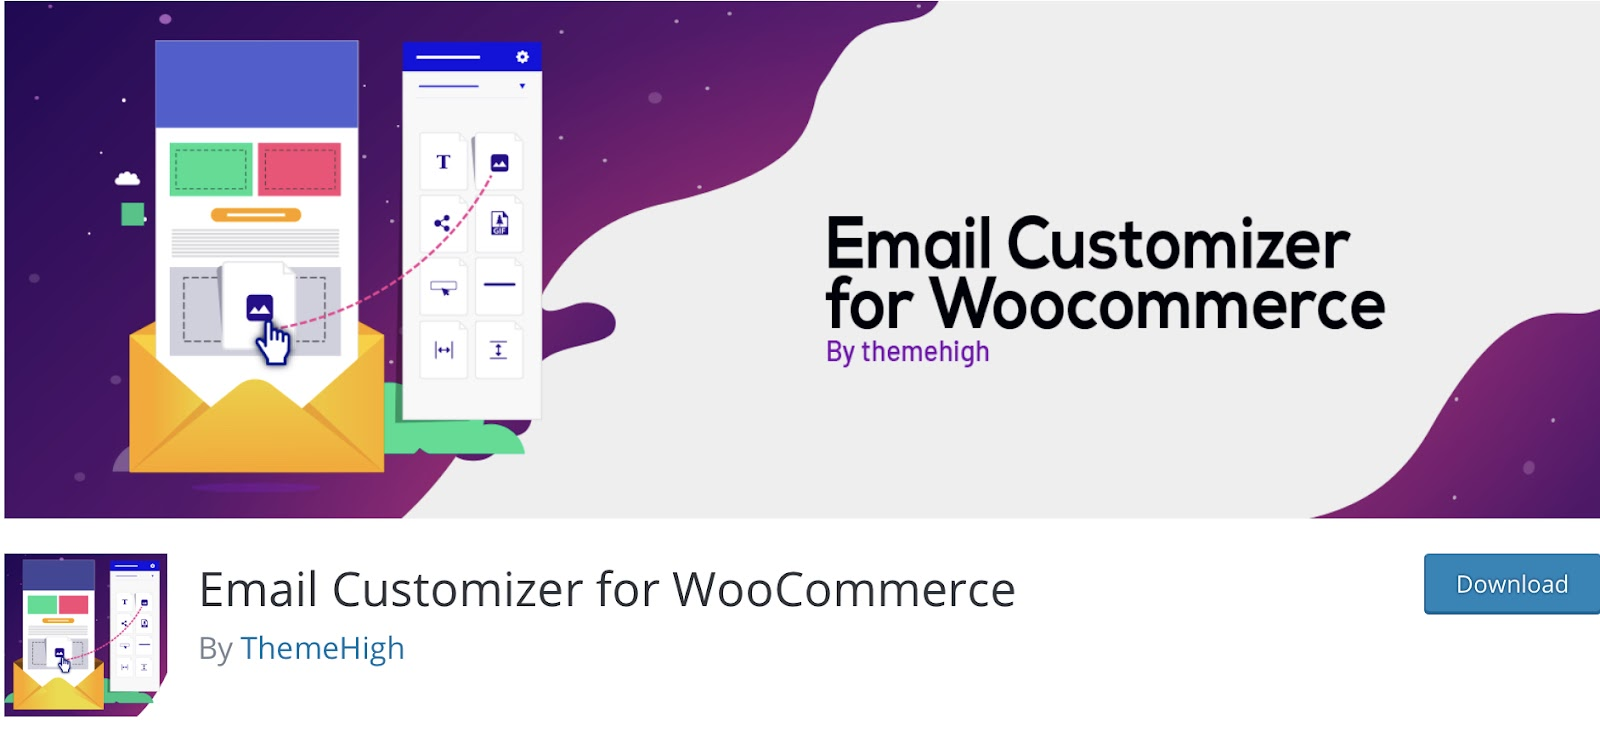 Email Customizer for WooCommerce by ThemeHigh